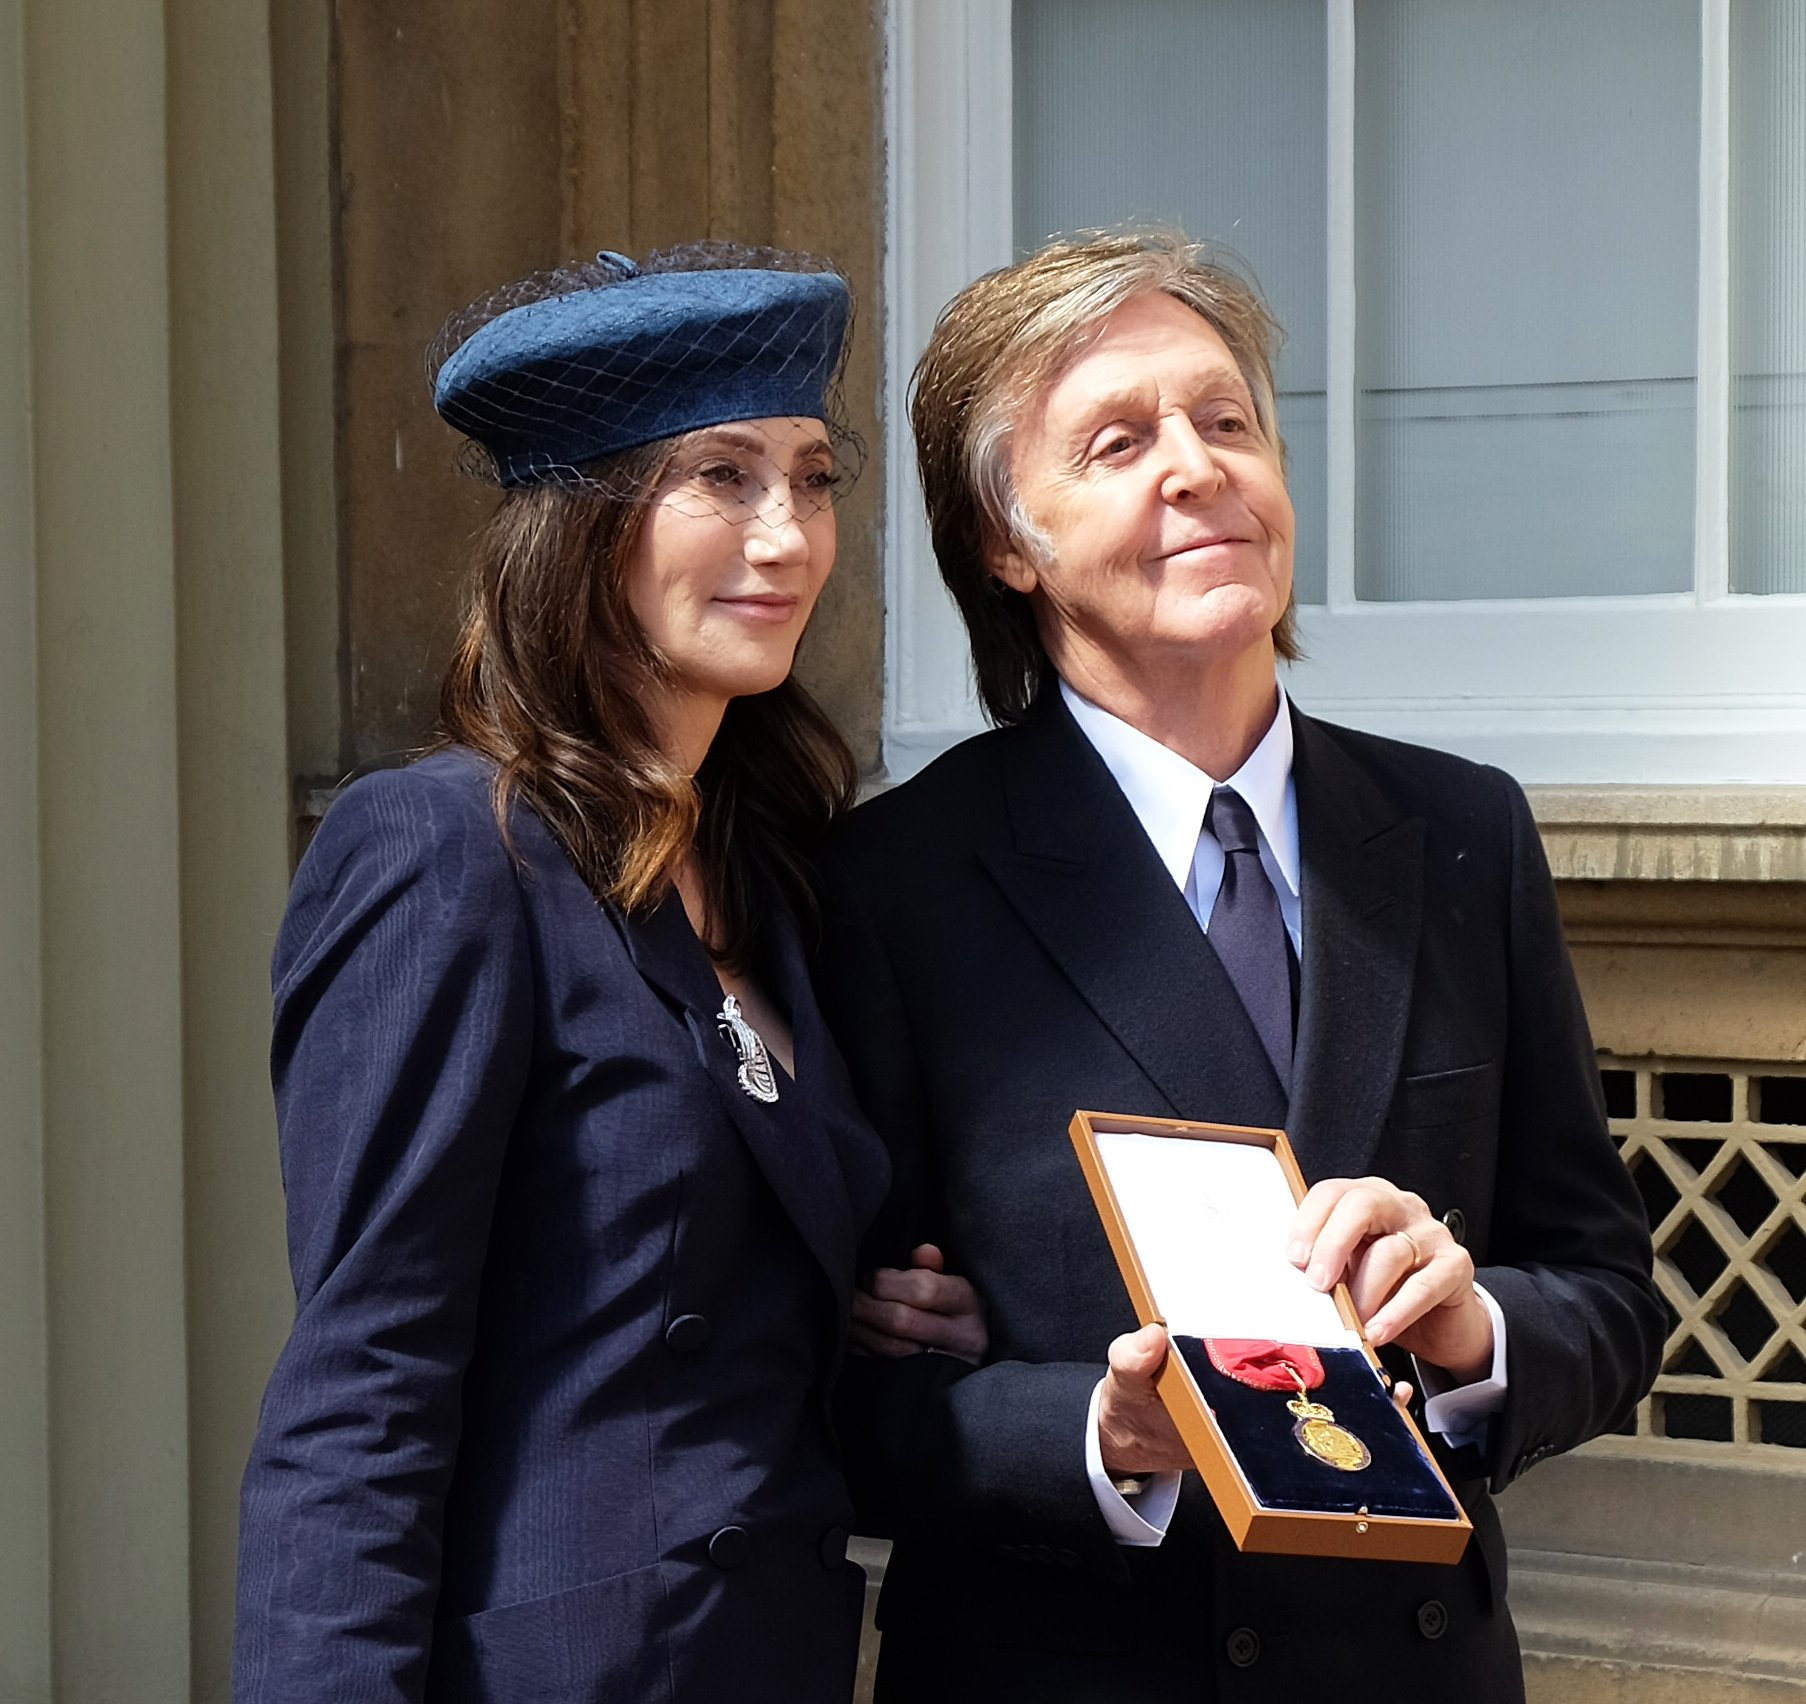 Reloaded twaddle – RT @RoyalFamily: Congratulations Sir @PaulMcCartney who has been made a #Compani...